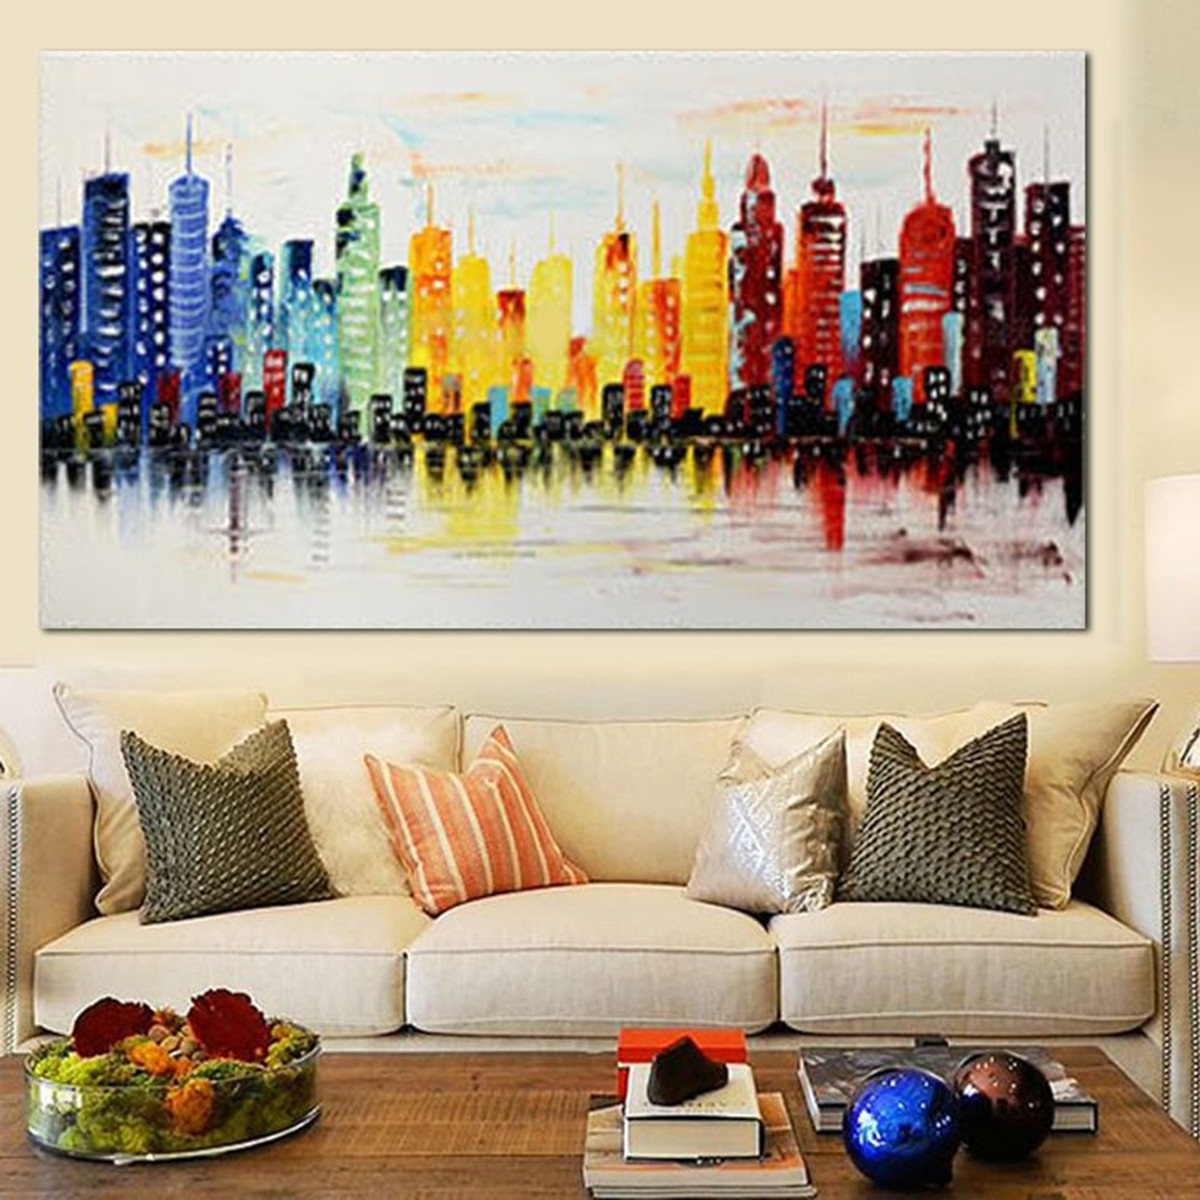 Best Ideas Of Wall Art Sets For Living Room - Wall art sets for living room